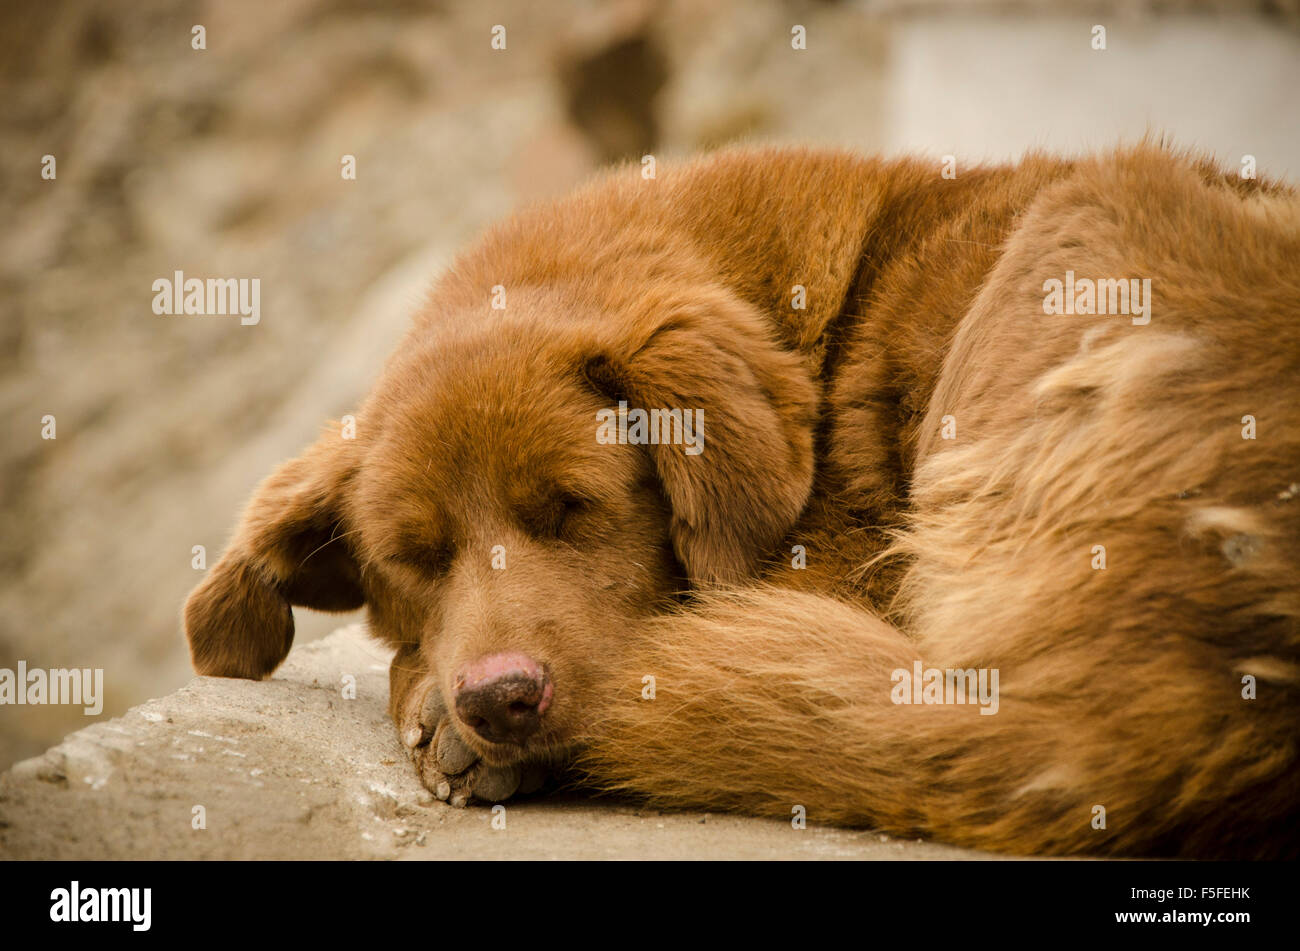 Dog lying down sleeping - Stock Image